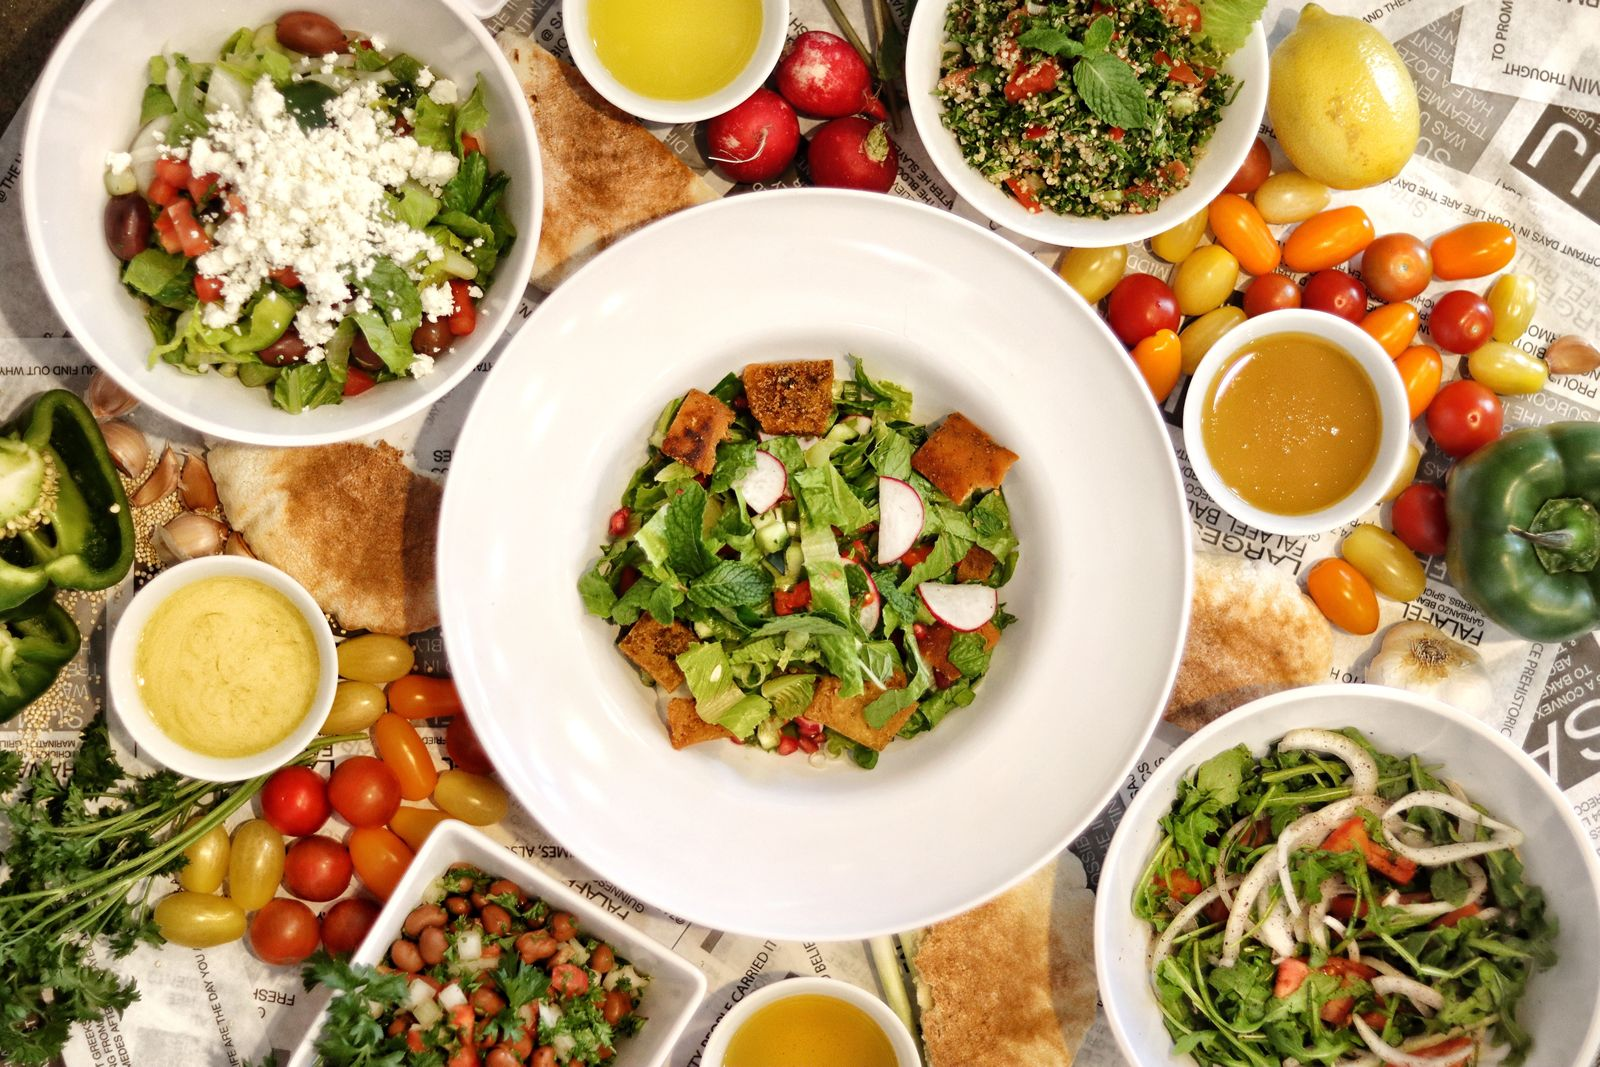 SAJJ Mediterranean Launches Five Classic Mediterranean Salads